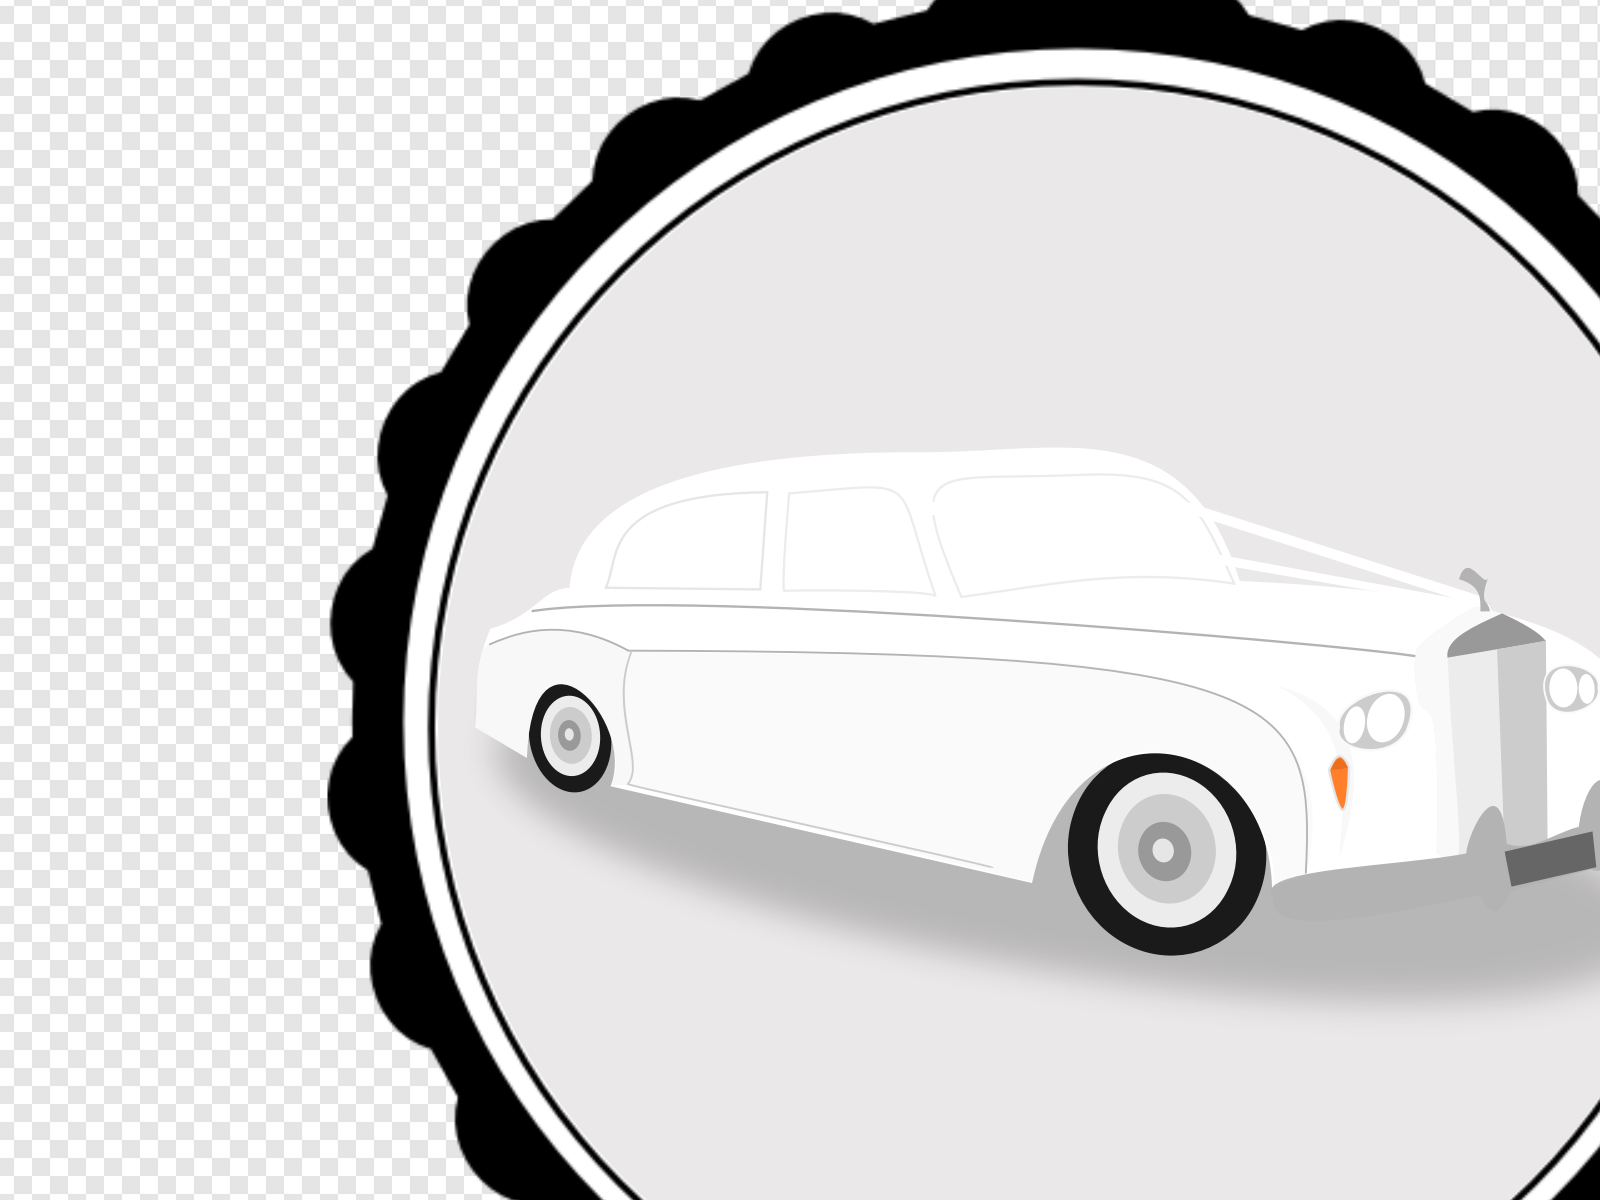 Limo Clip art, Icon and SVG.